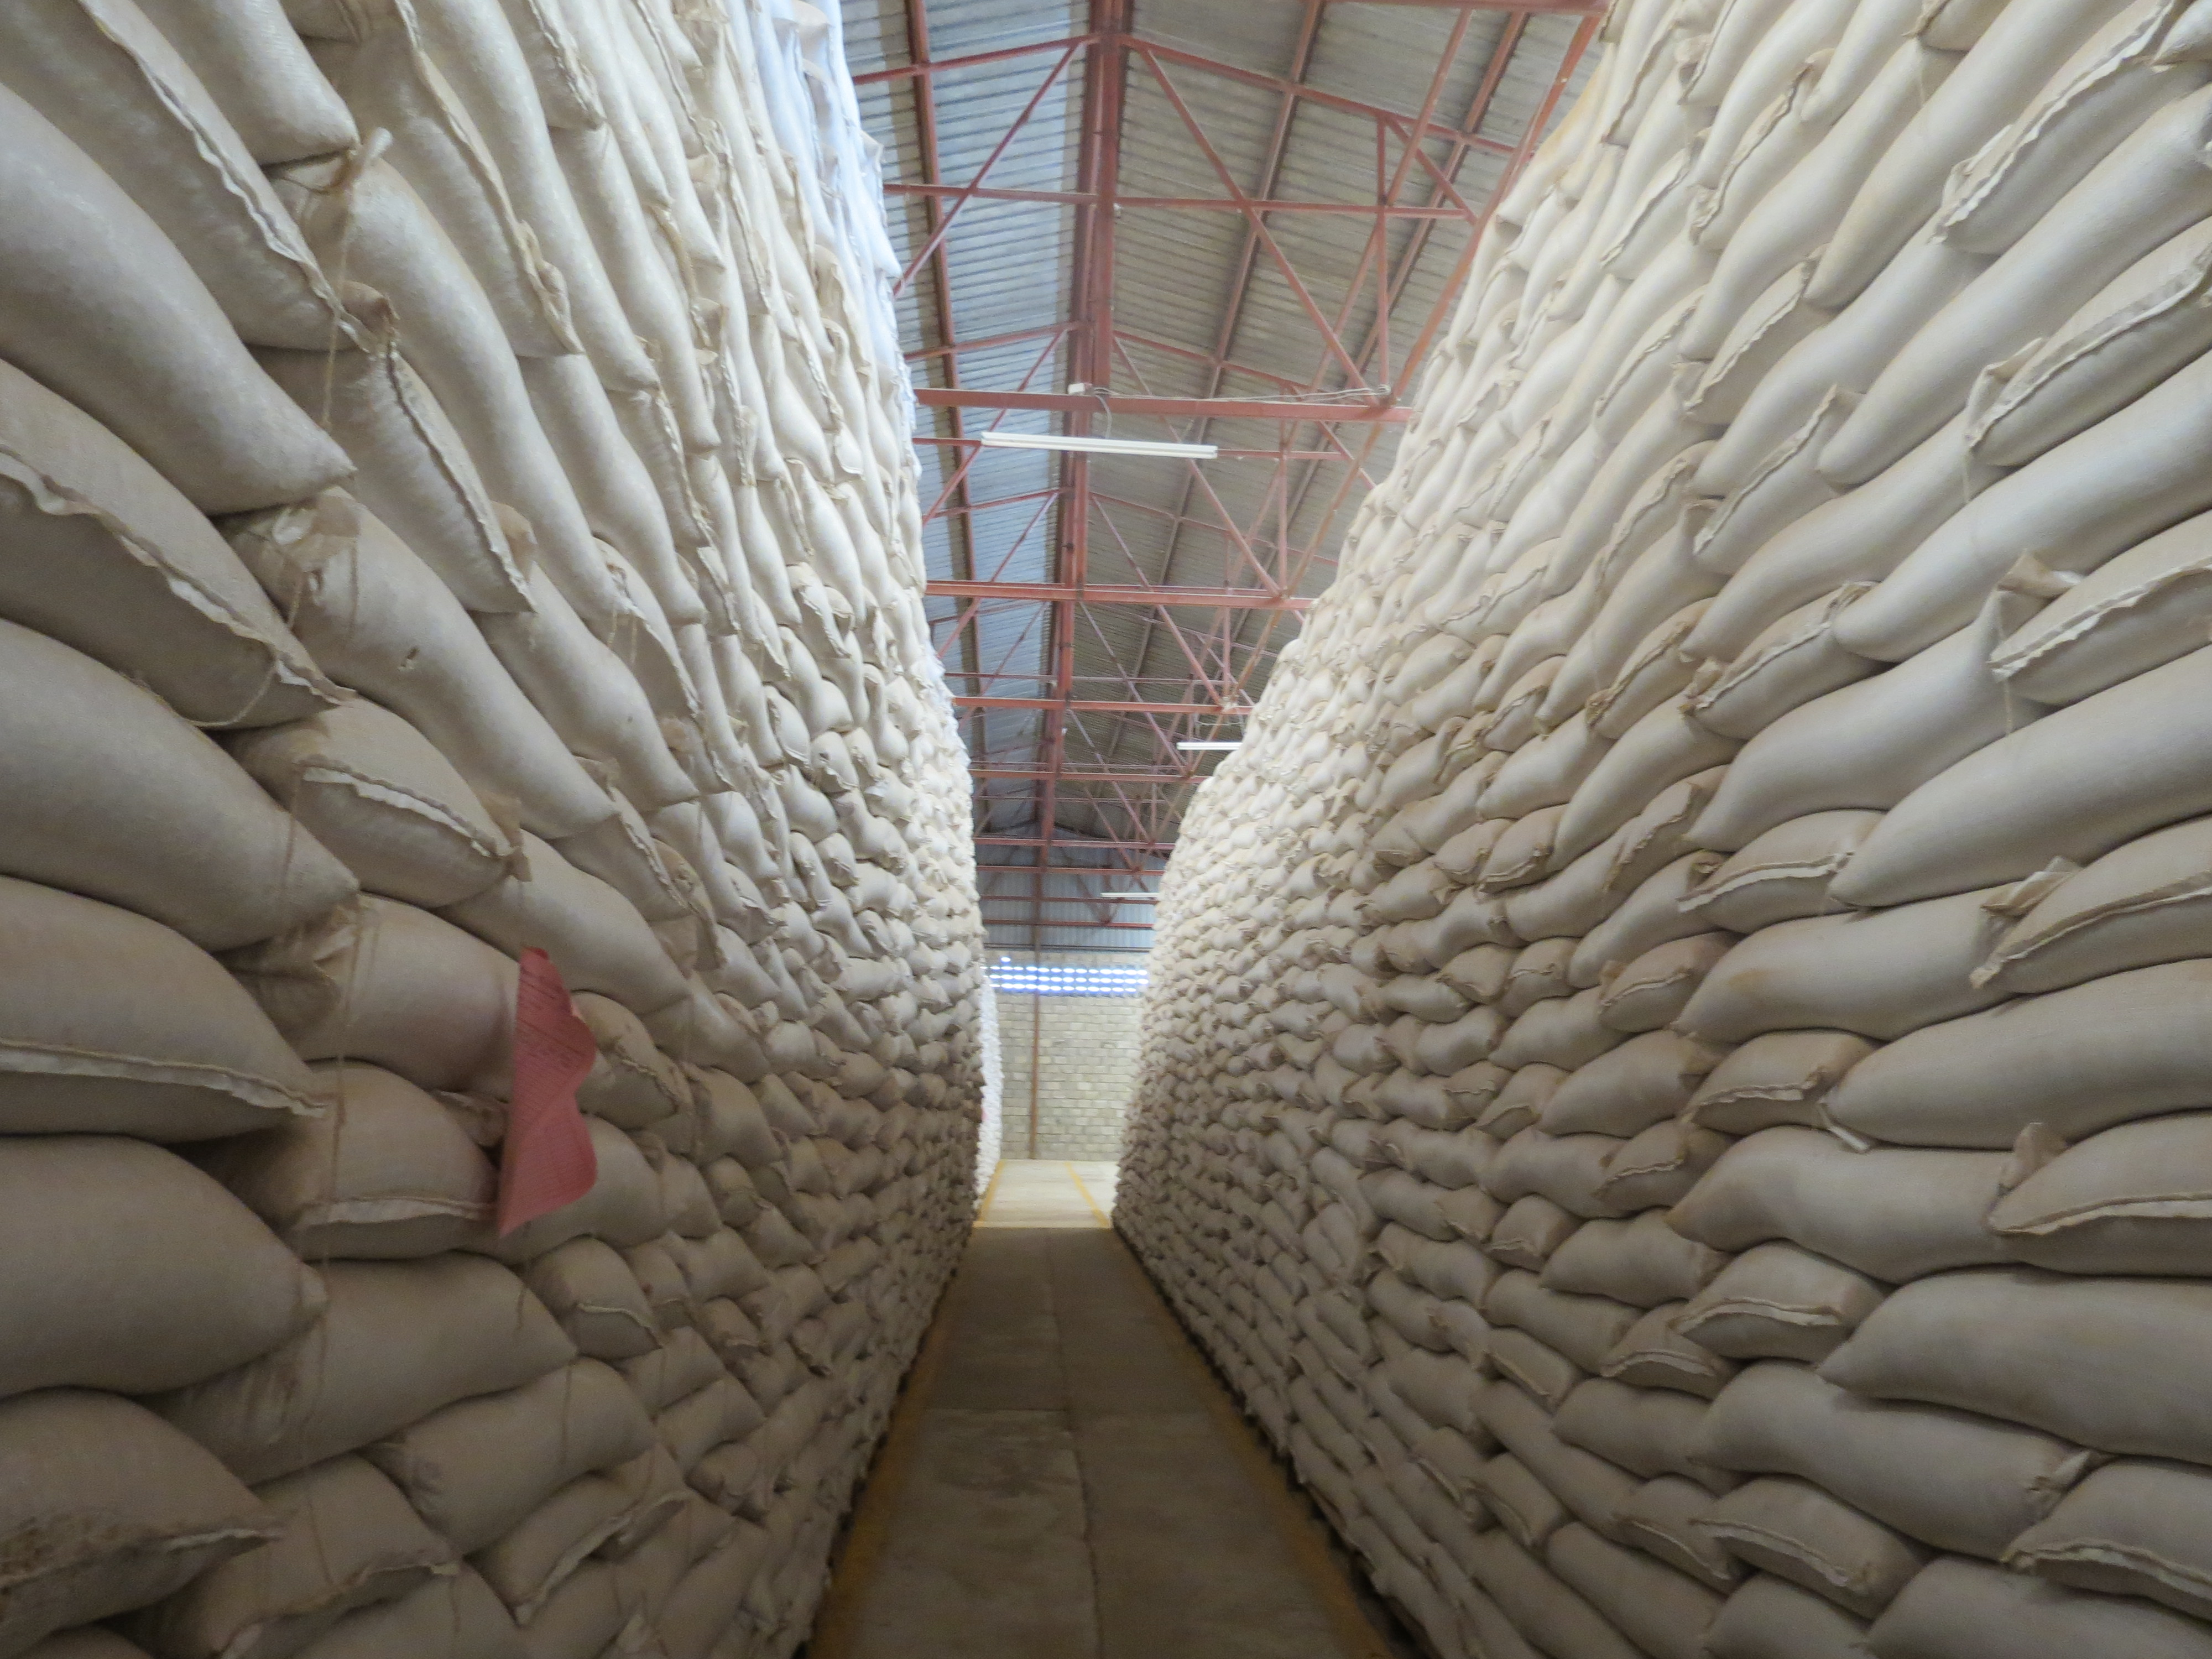 IFAD and PARM launching Warehousing Study in Sub-Saharan Africa in collaboration with AFD and CTA